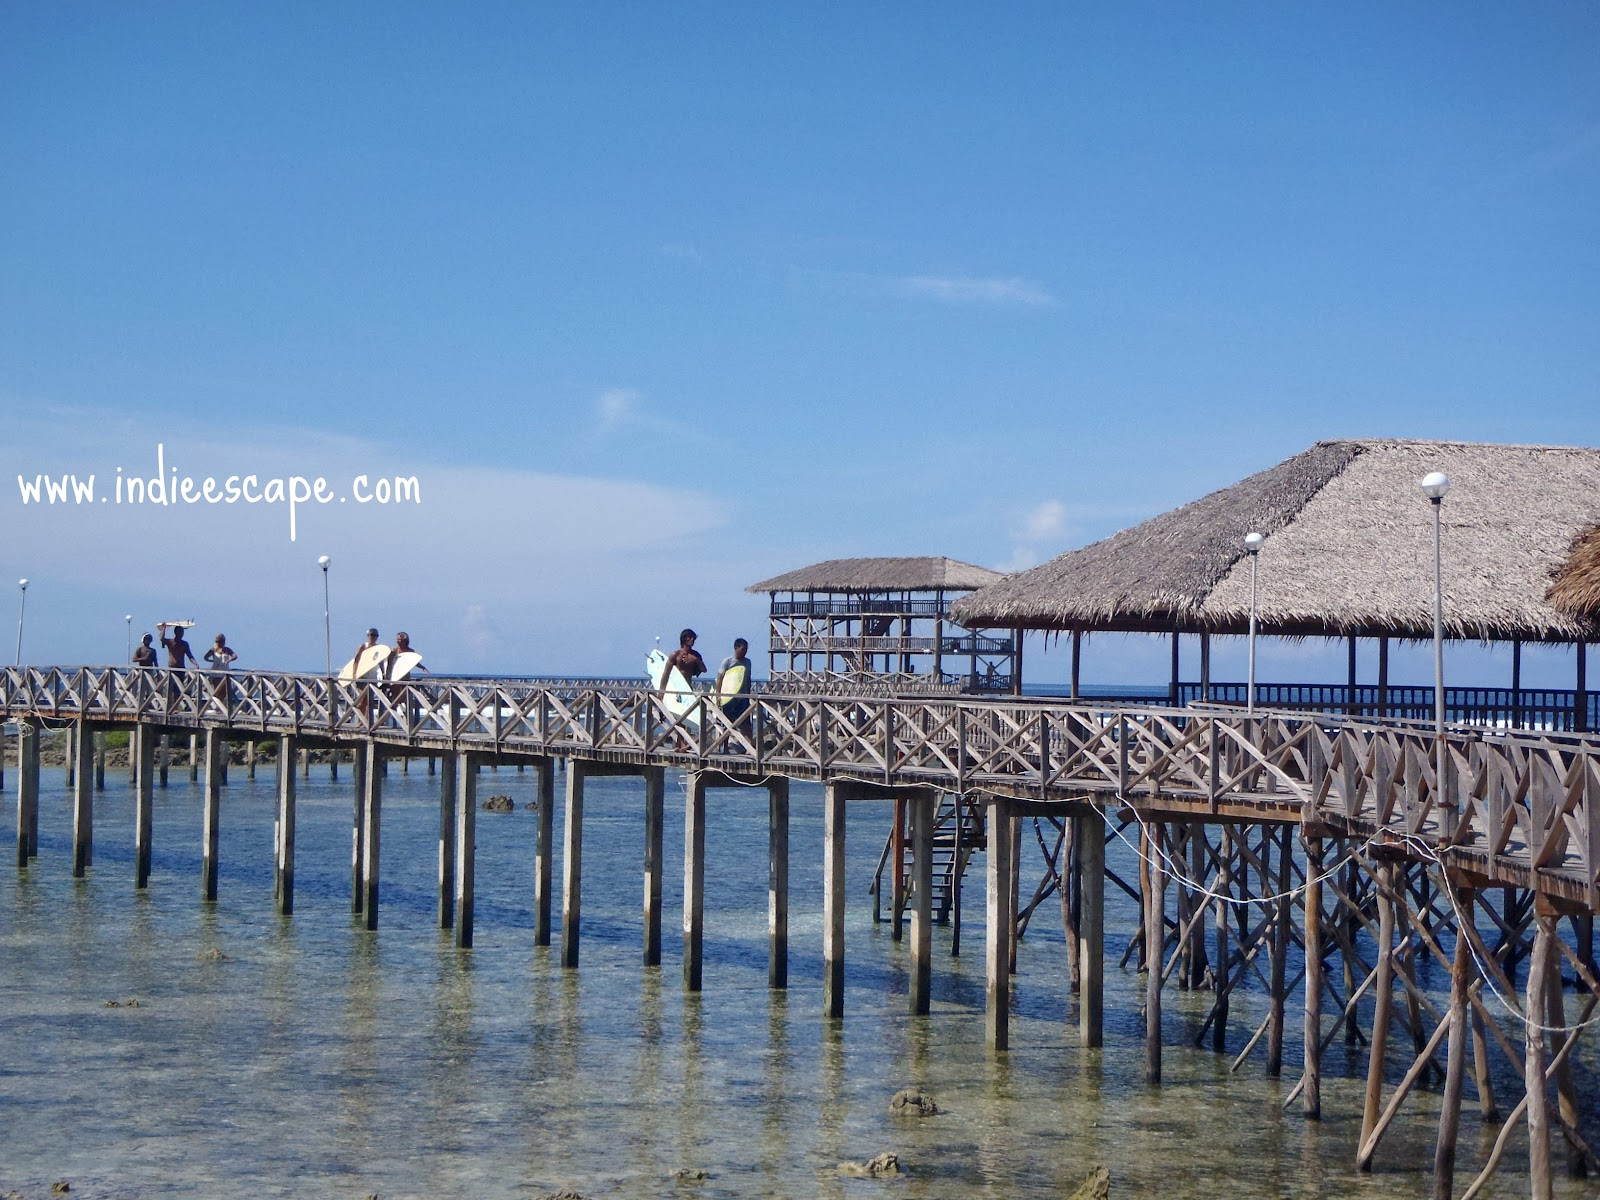 siargao island tour itinerary 3 days indie escape